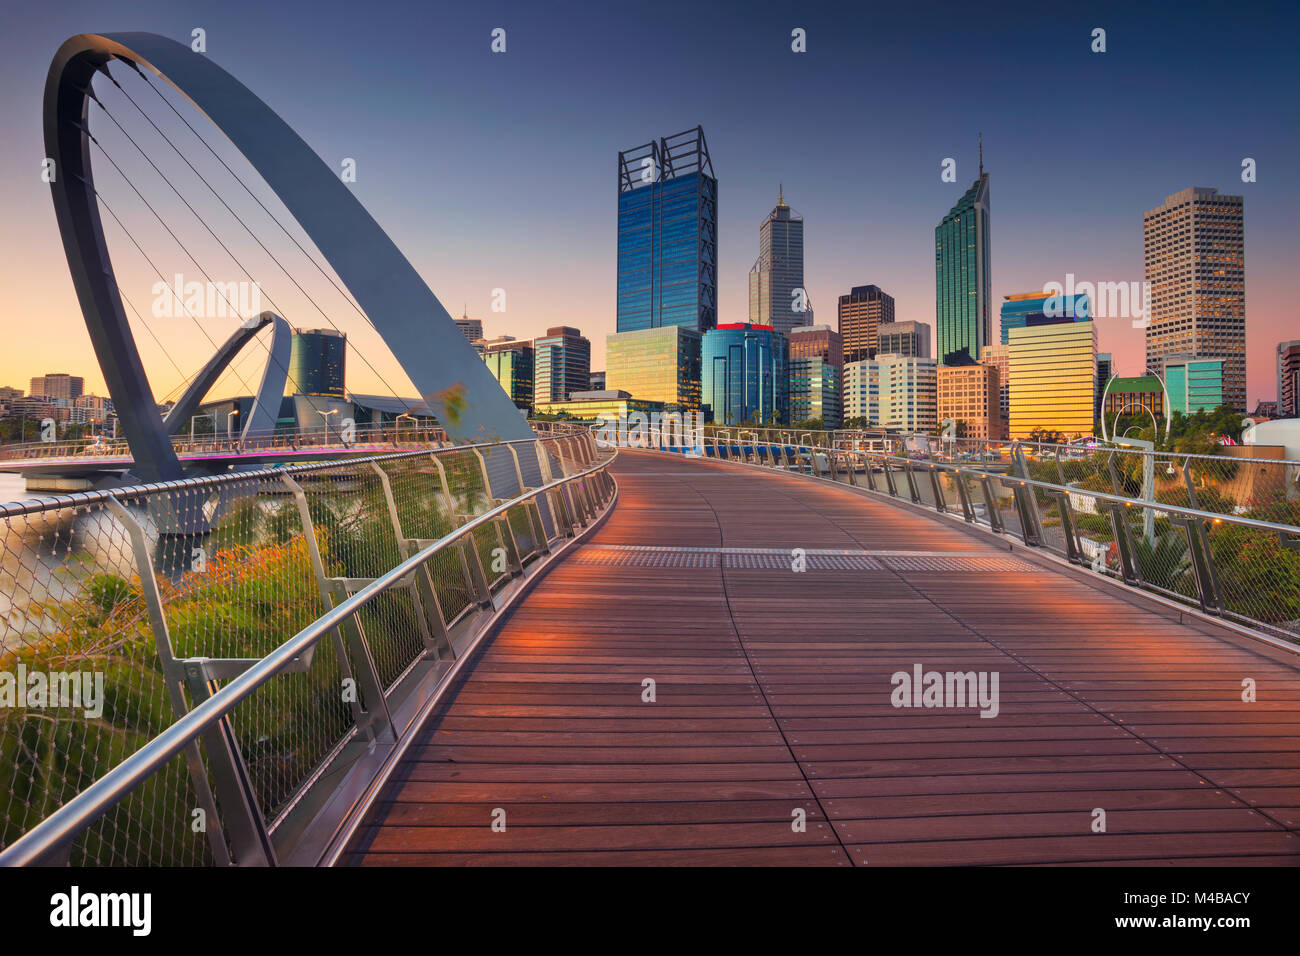 Perth. Cityscape image of Perth downtown skyline, Australia during sunset. - Stock Image